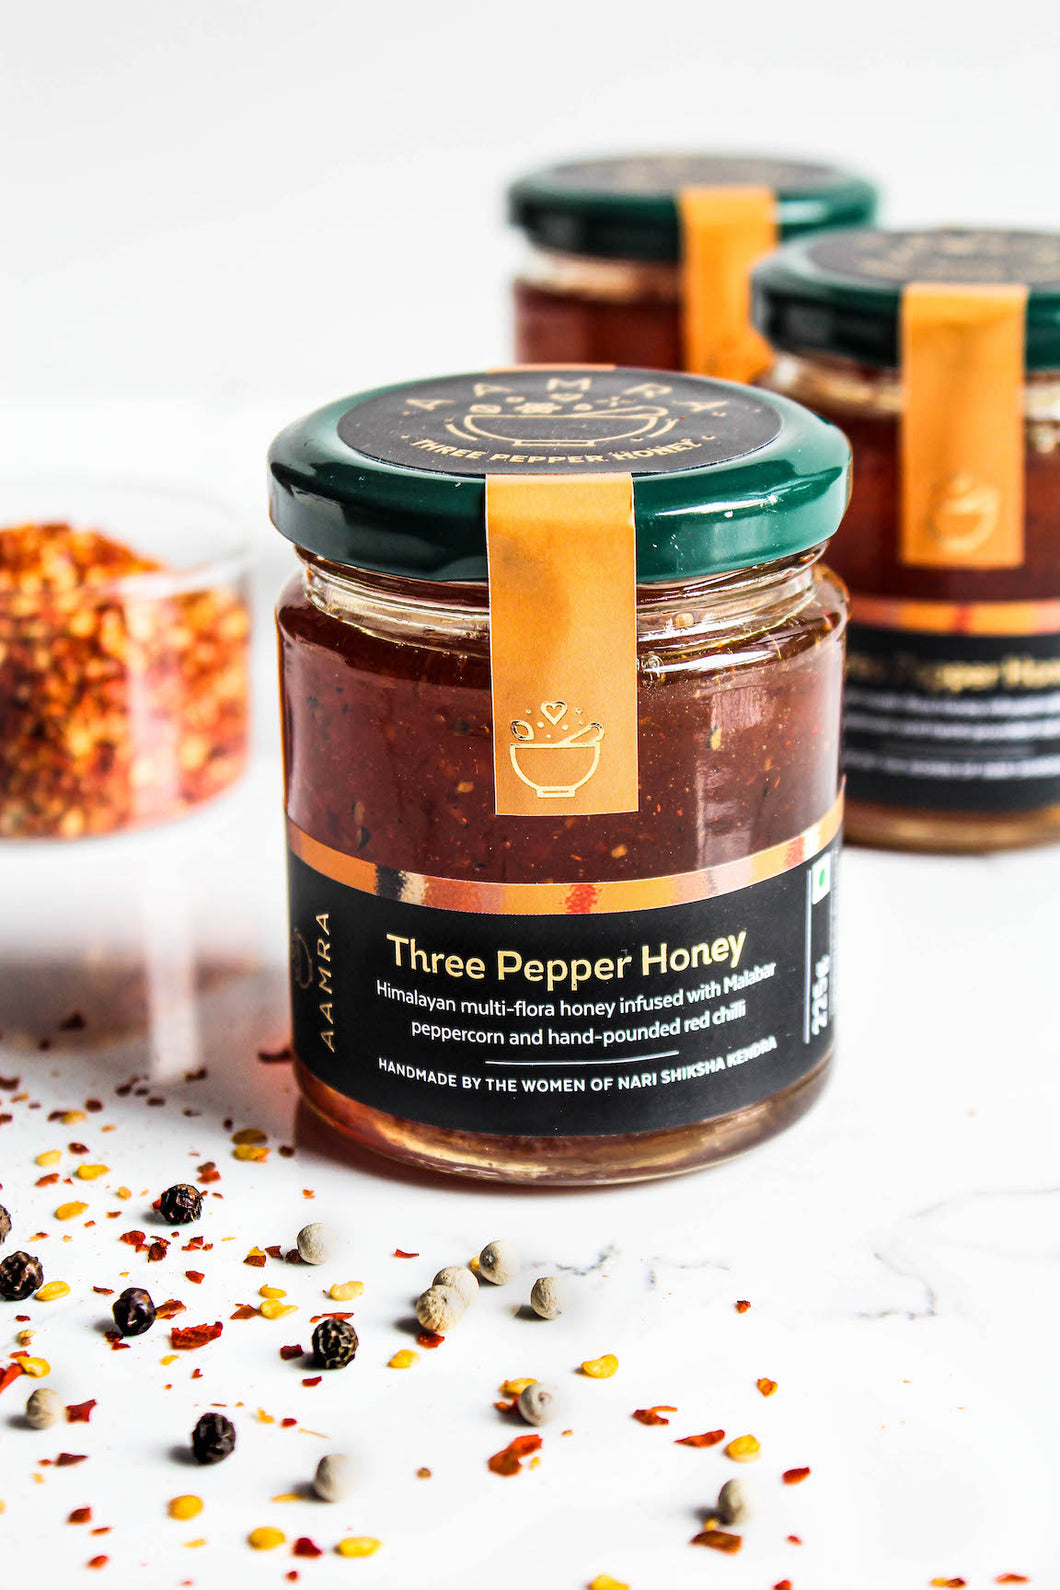 Three Pepper Honey